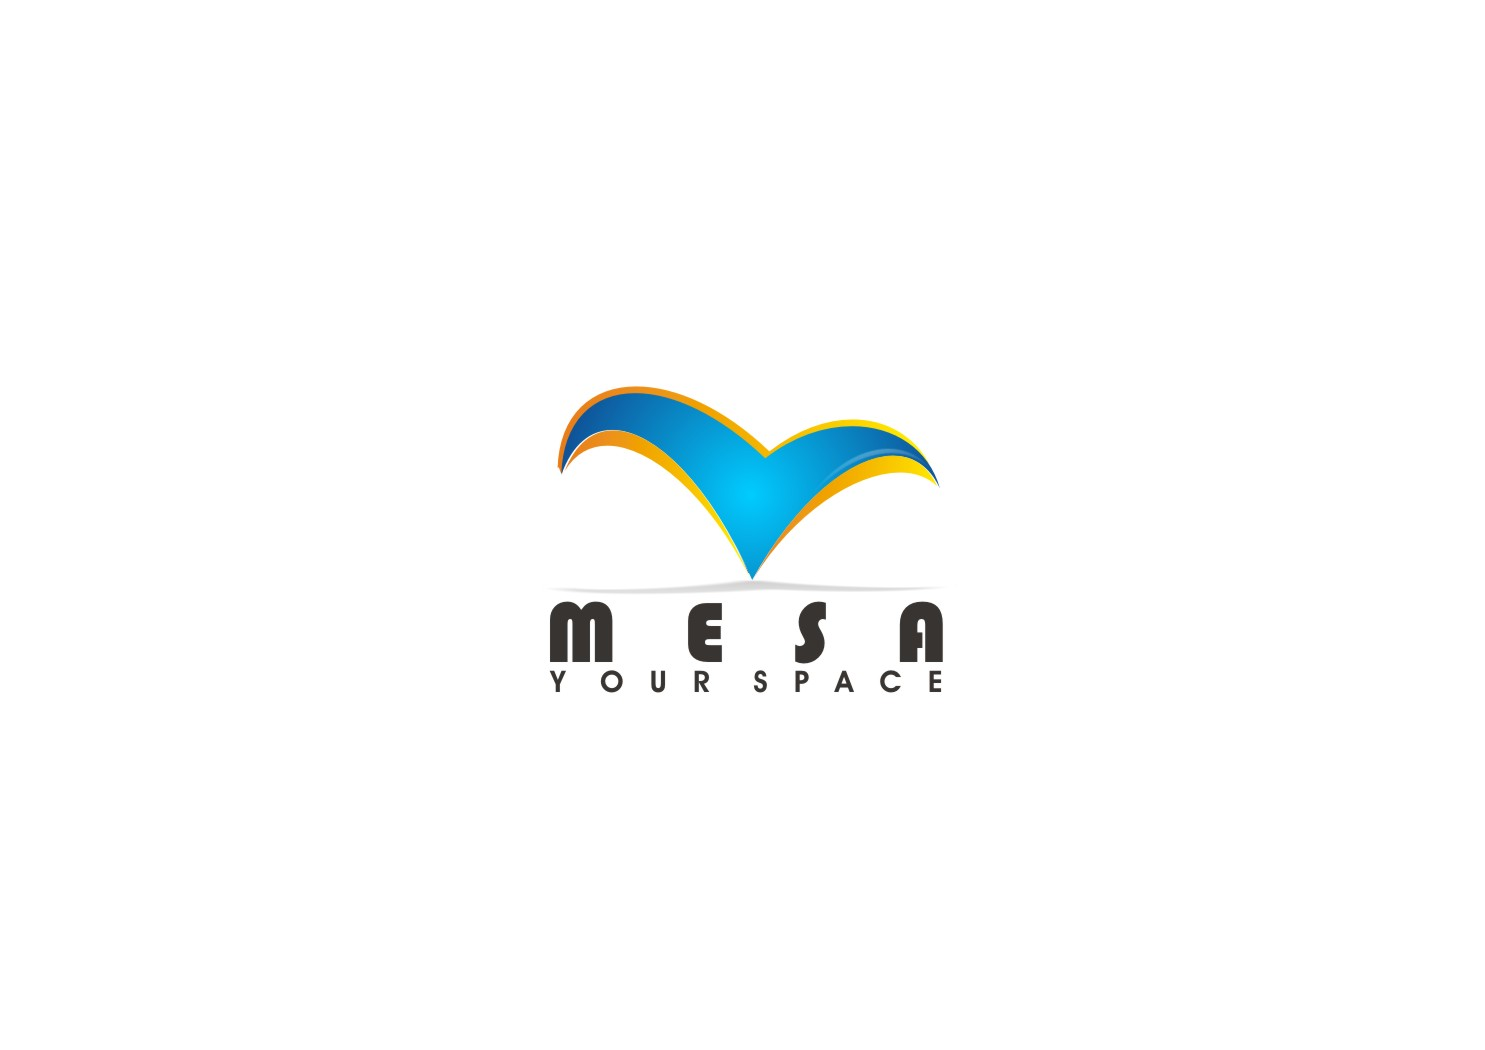 Logo Design by yanxsant - Entry No. 179 in the Logo Design Contest Logo Design for Mesa.